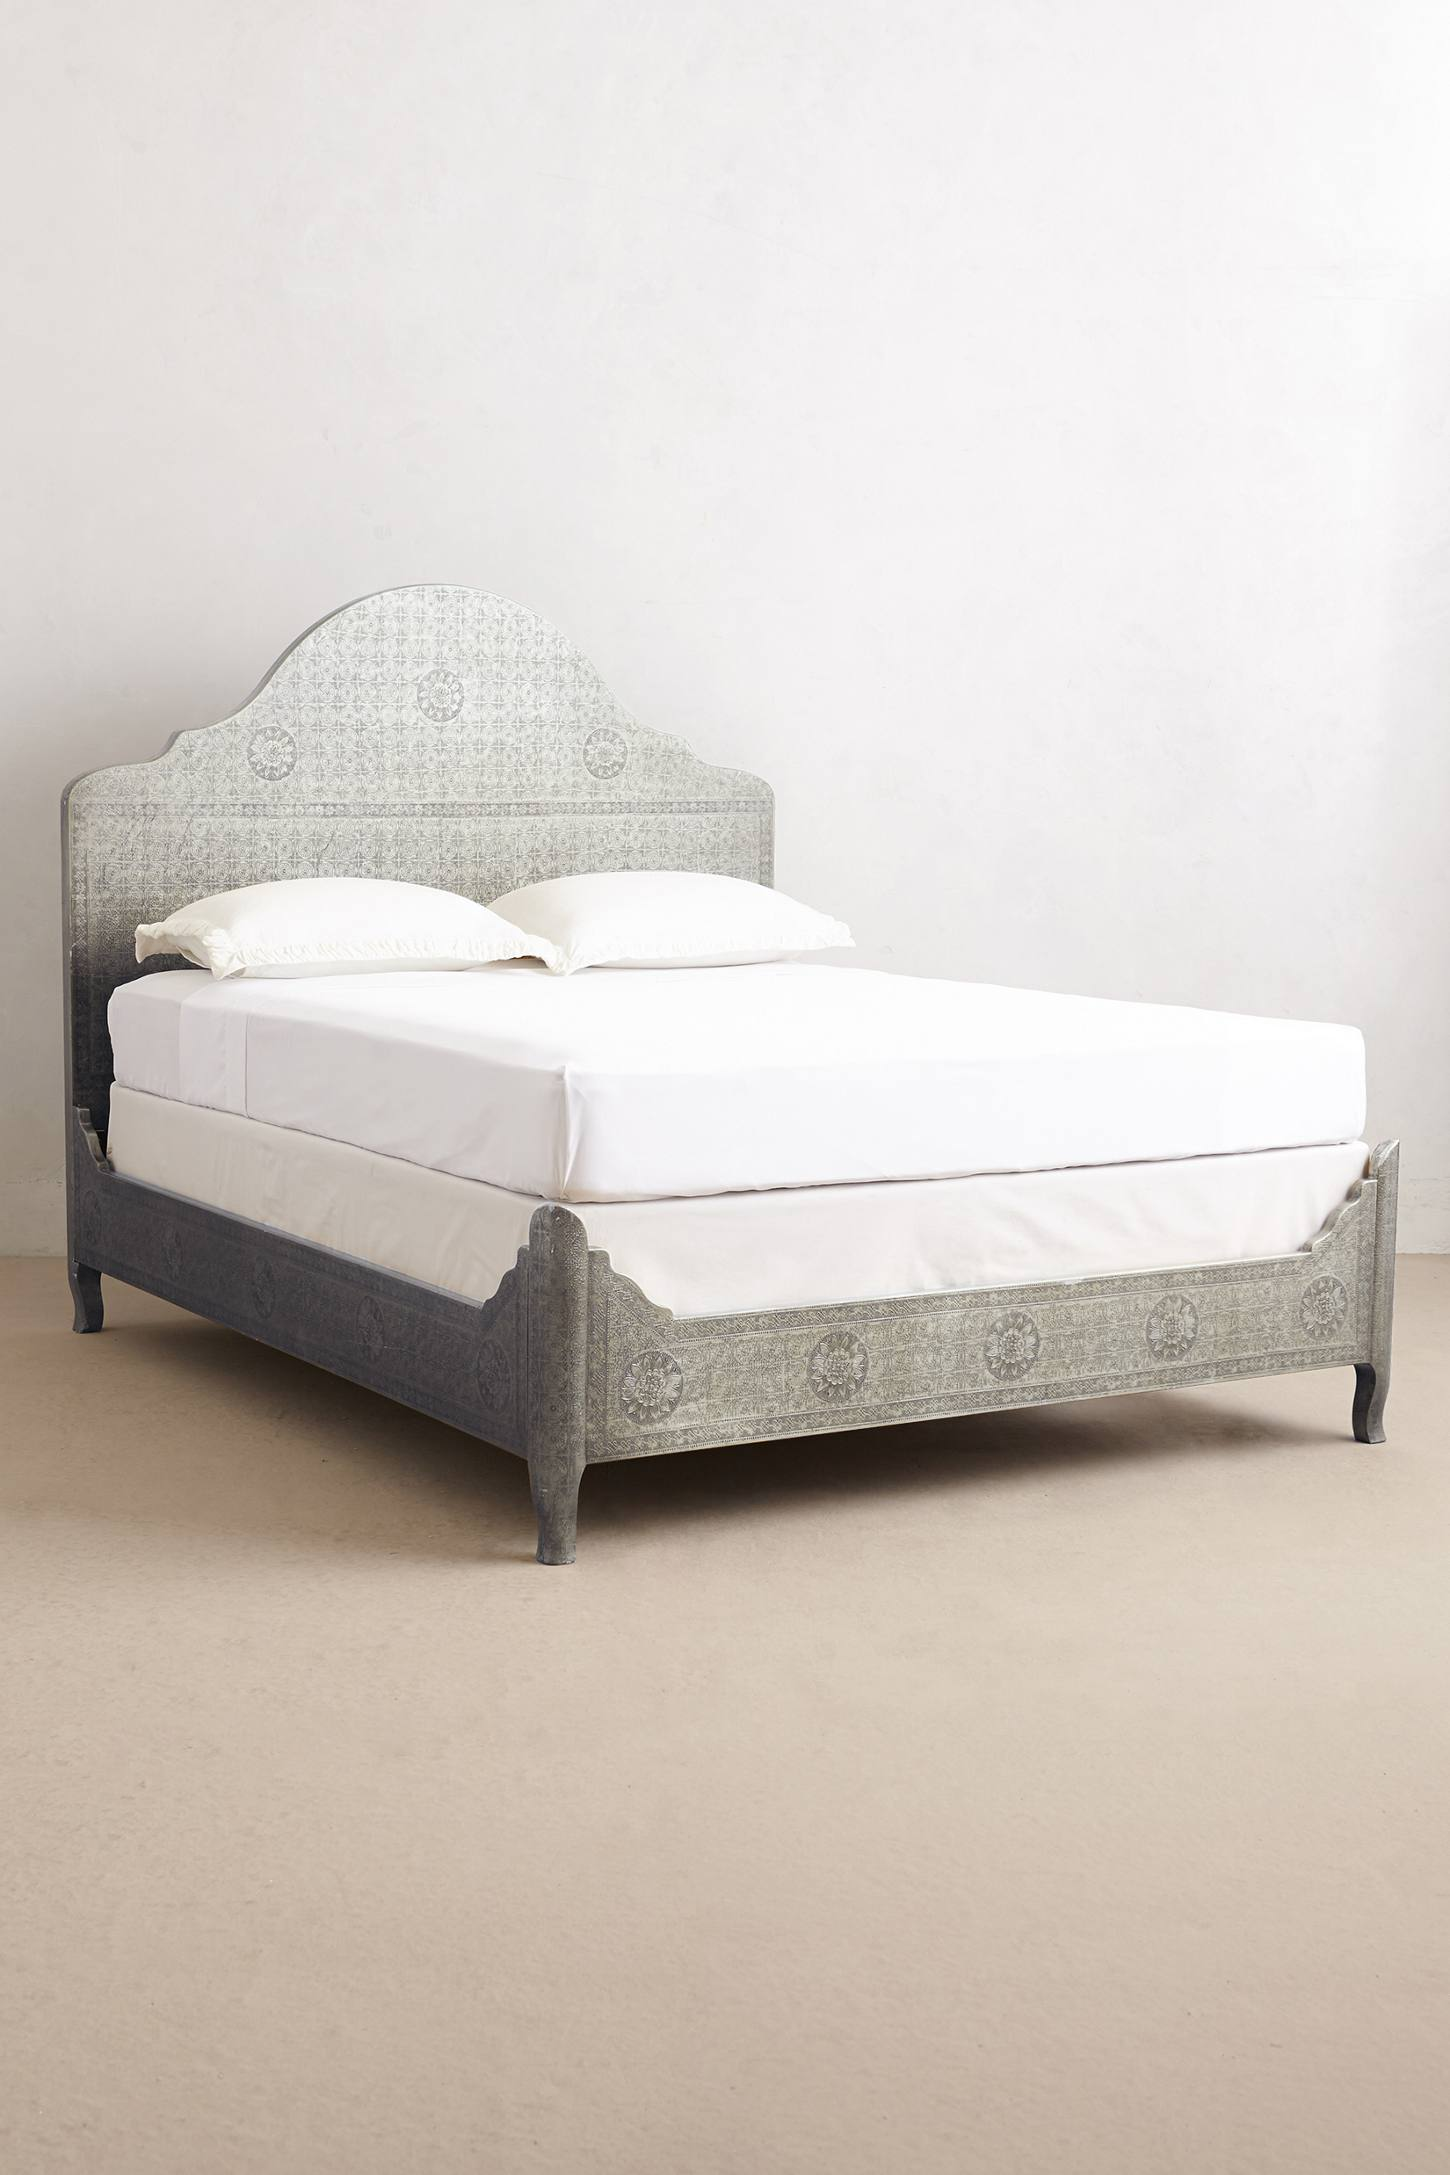 Slide View: 1: Hand-Embossed Bed